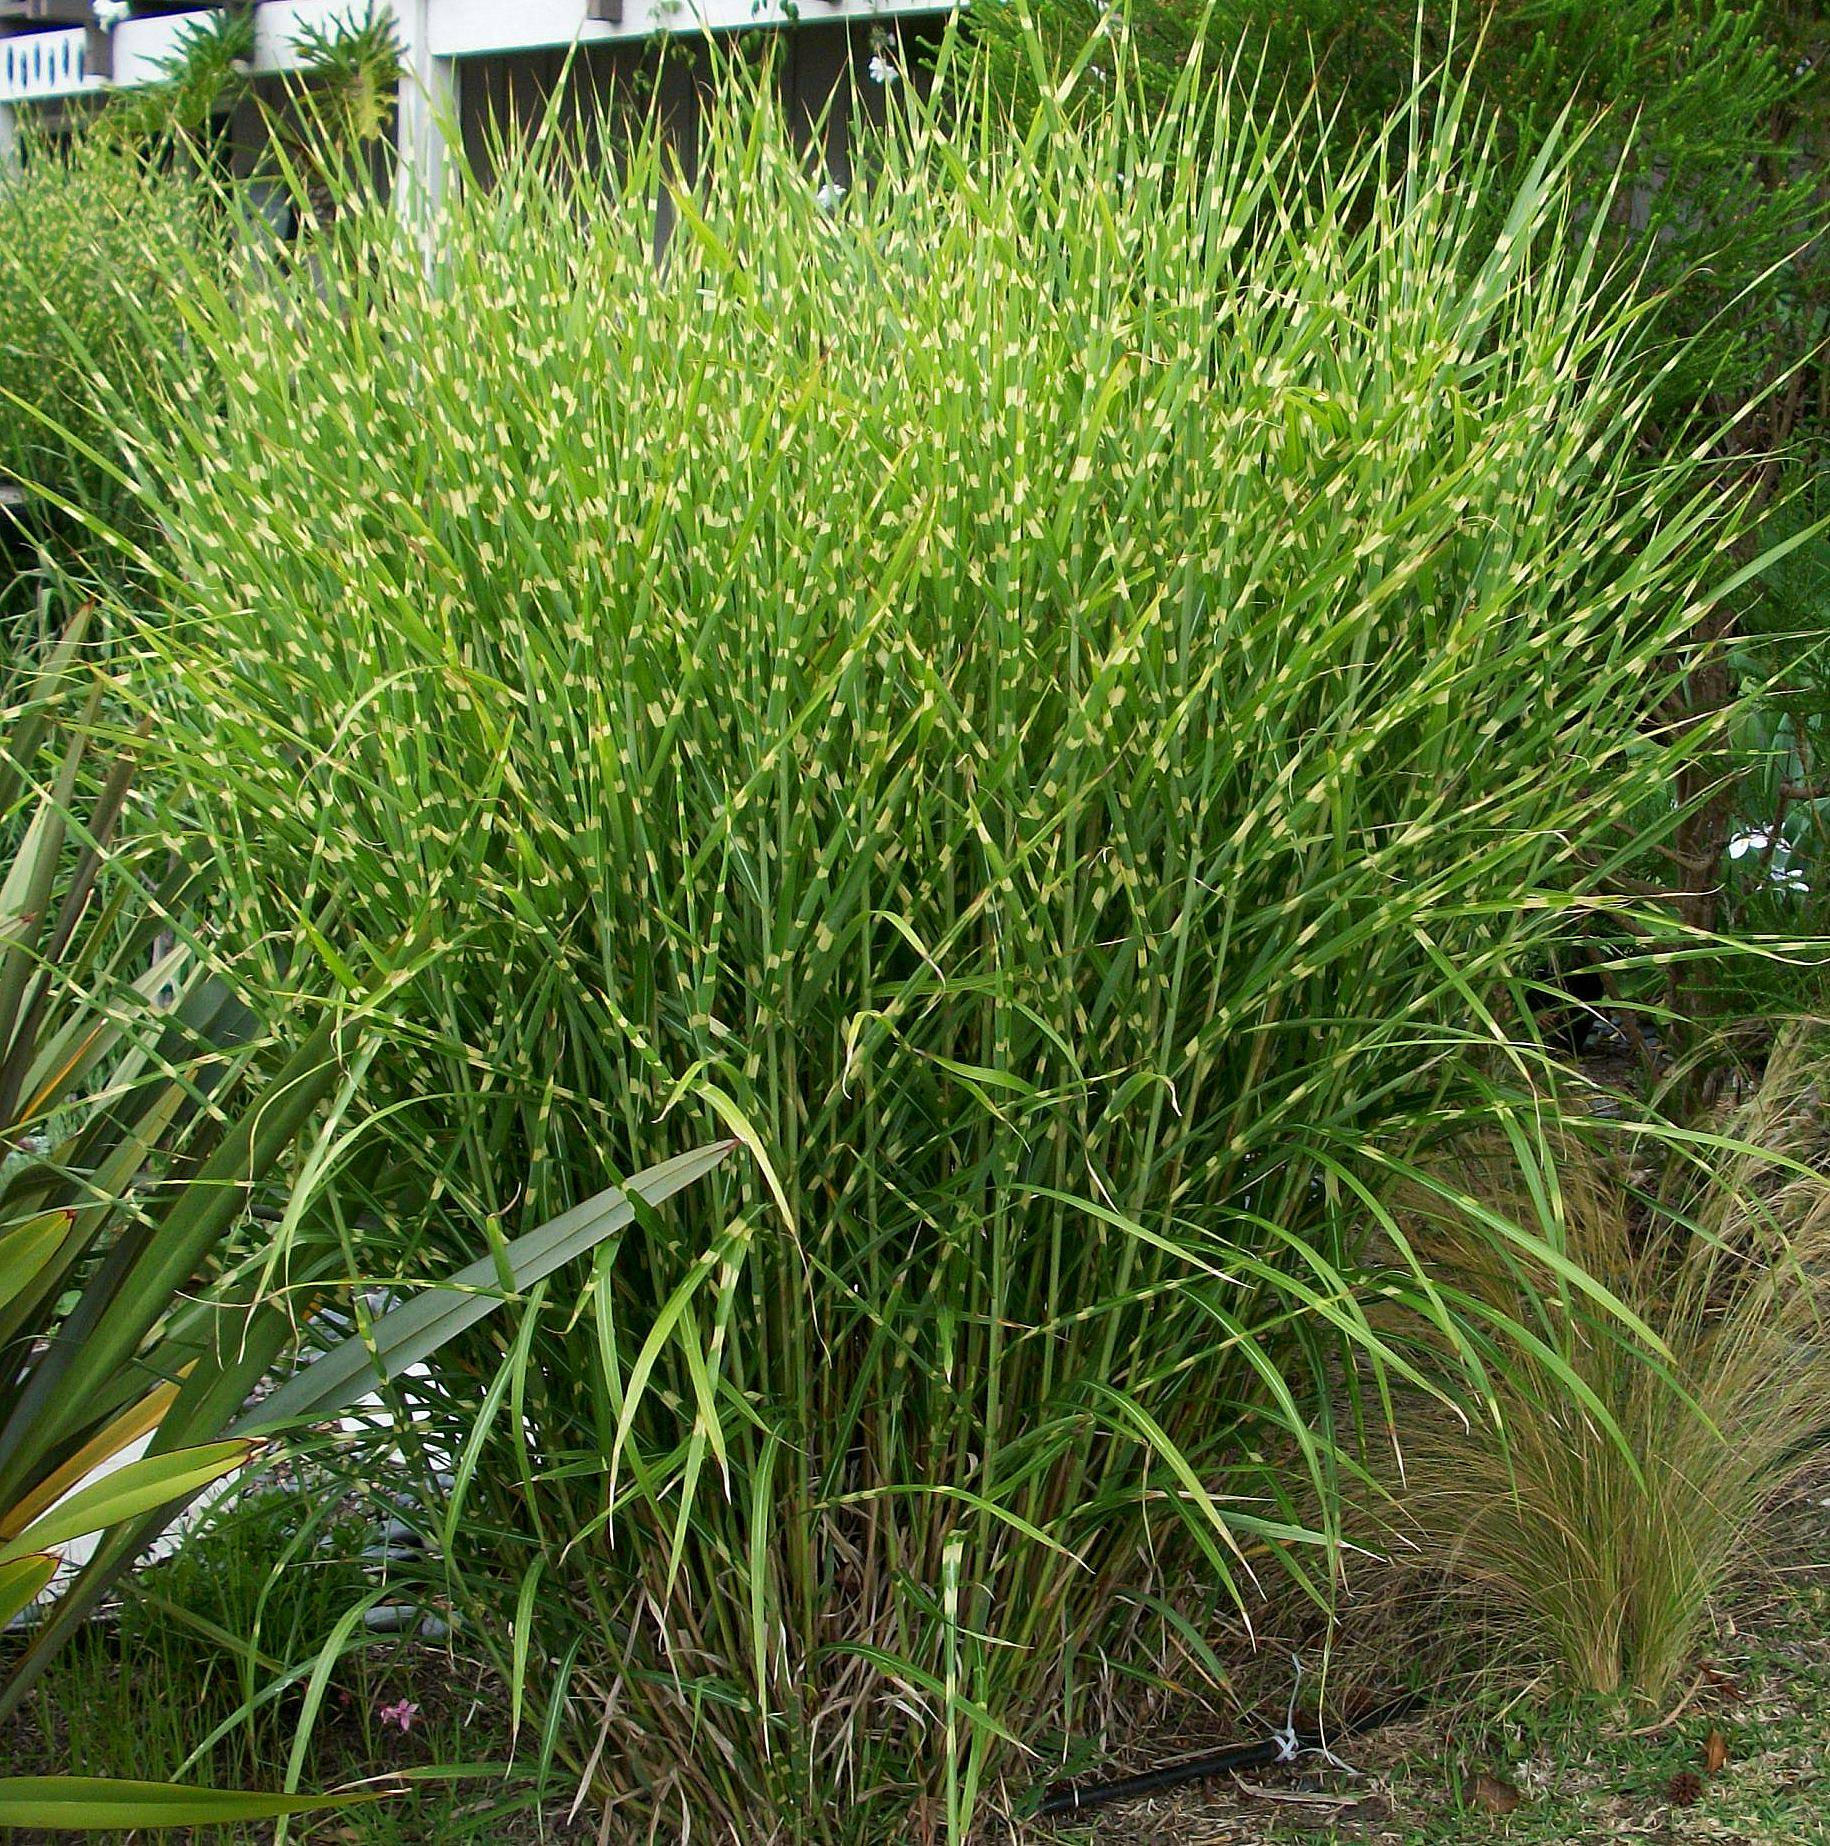 Willoway nurseries inc the midwest 39 s premier wholesale for Spiky ornamental grass